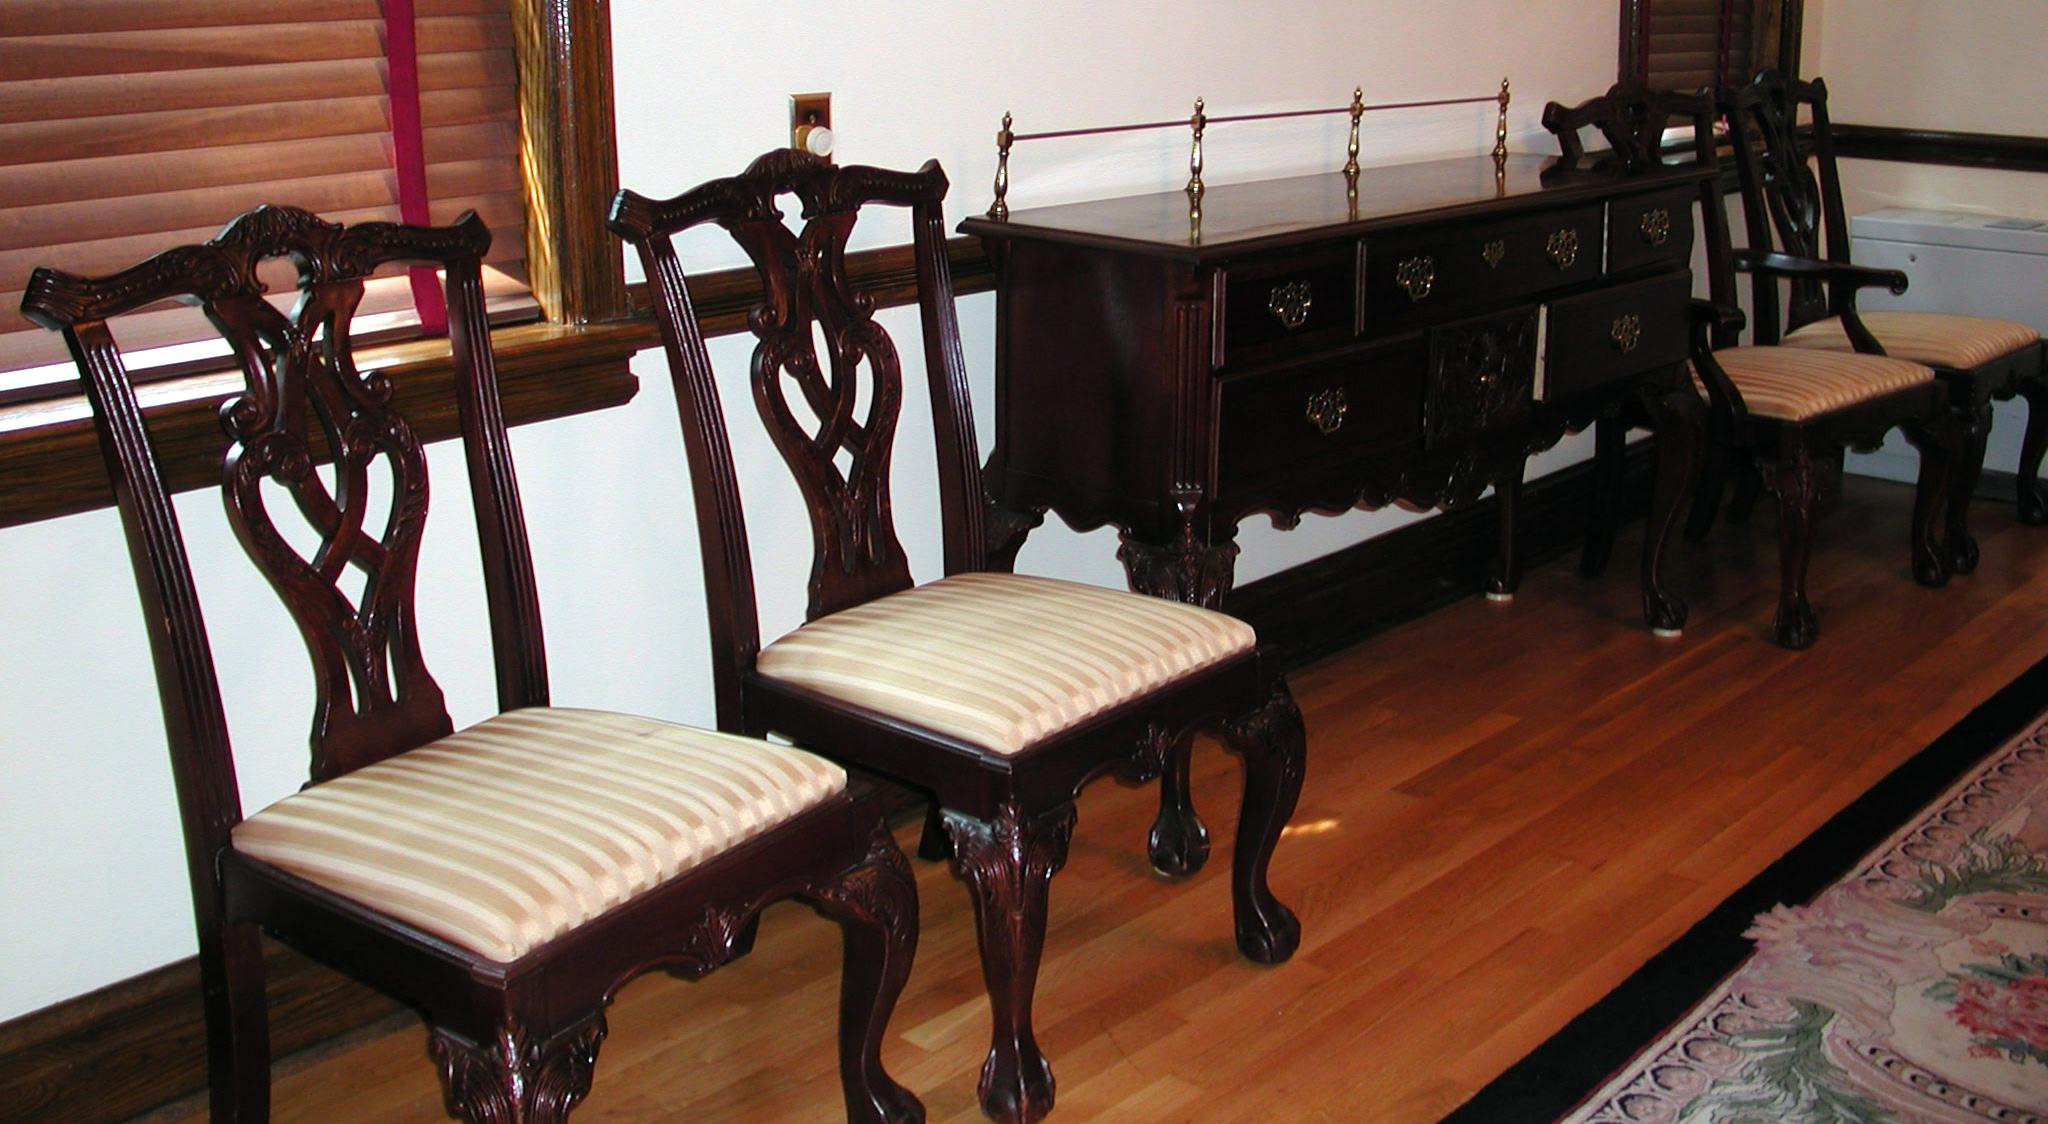 Chairs from the gifted dining room suite, circa 2000